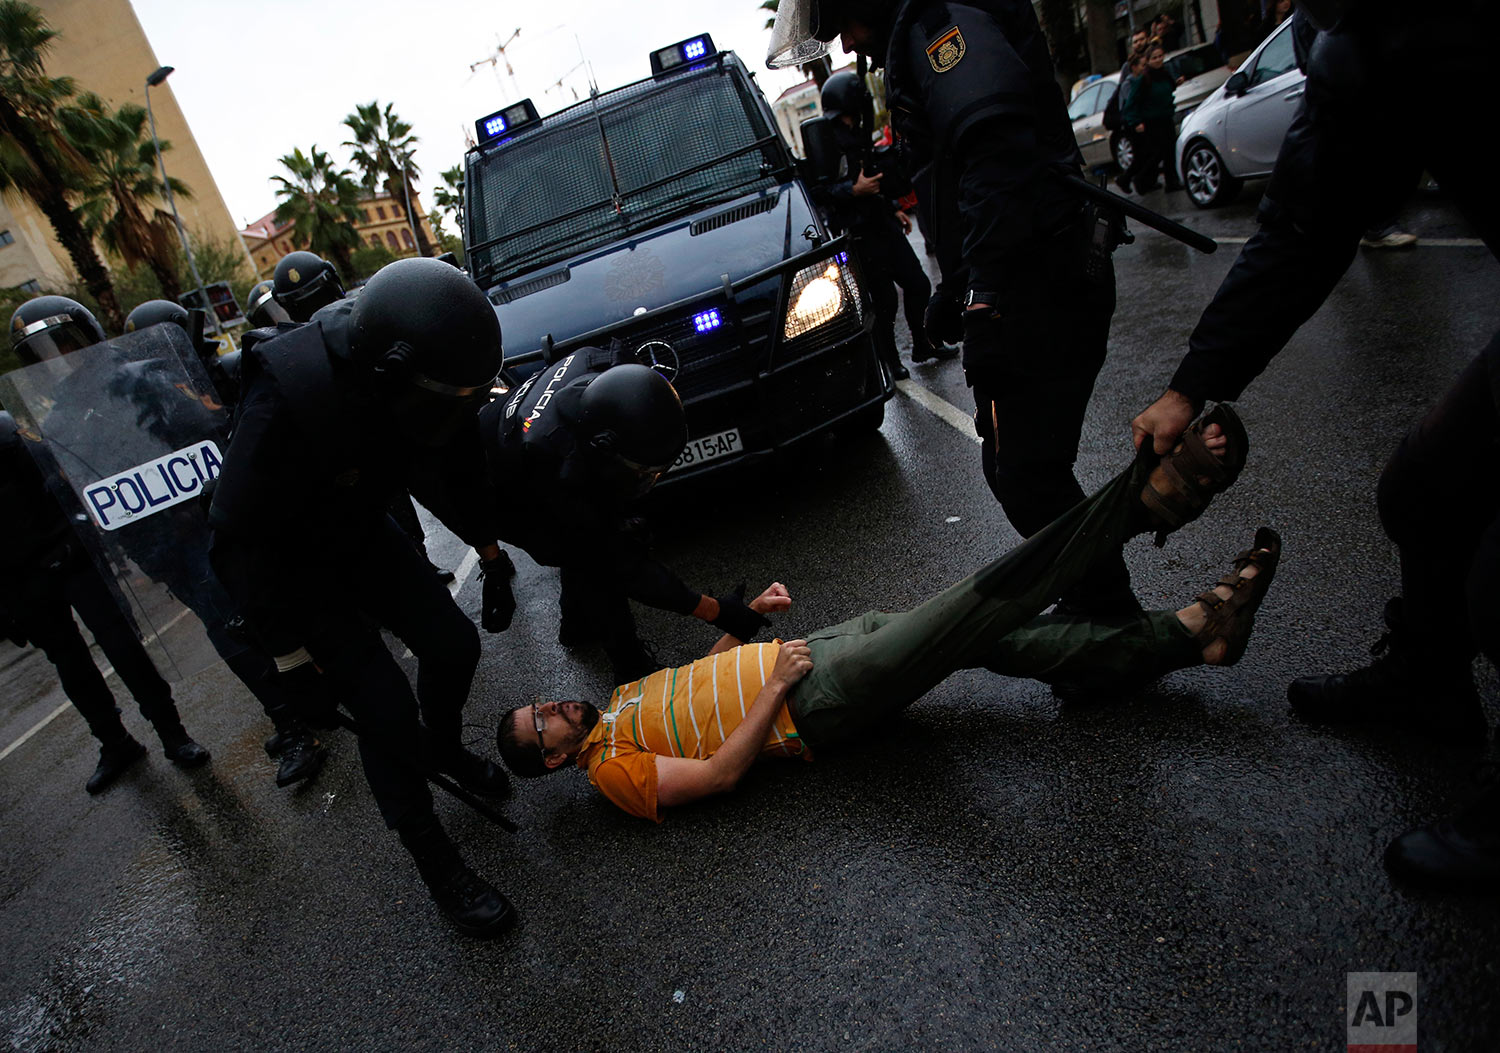 Spanish National Police officers drags a man trying to block a police van outside the Ramon Llull school assigned to be a polling station by the Catalan government in Barcelona, Spain, early Sunday, Oct. 1, 2017. Catalan pro-referendum supporters vowed to ignore a police ultimatum to leave the schools they are occupying to use in a vote seeking independence from Spain. (AP Photo/Emilio Morenatti)